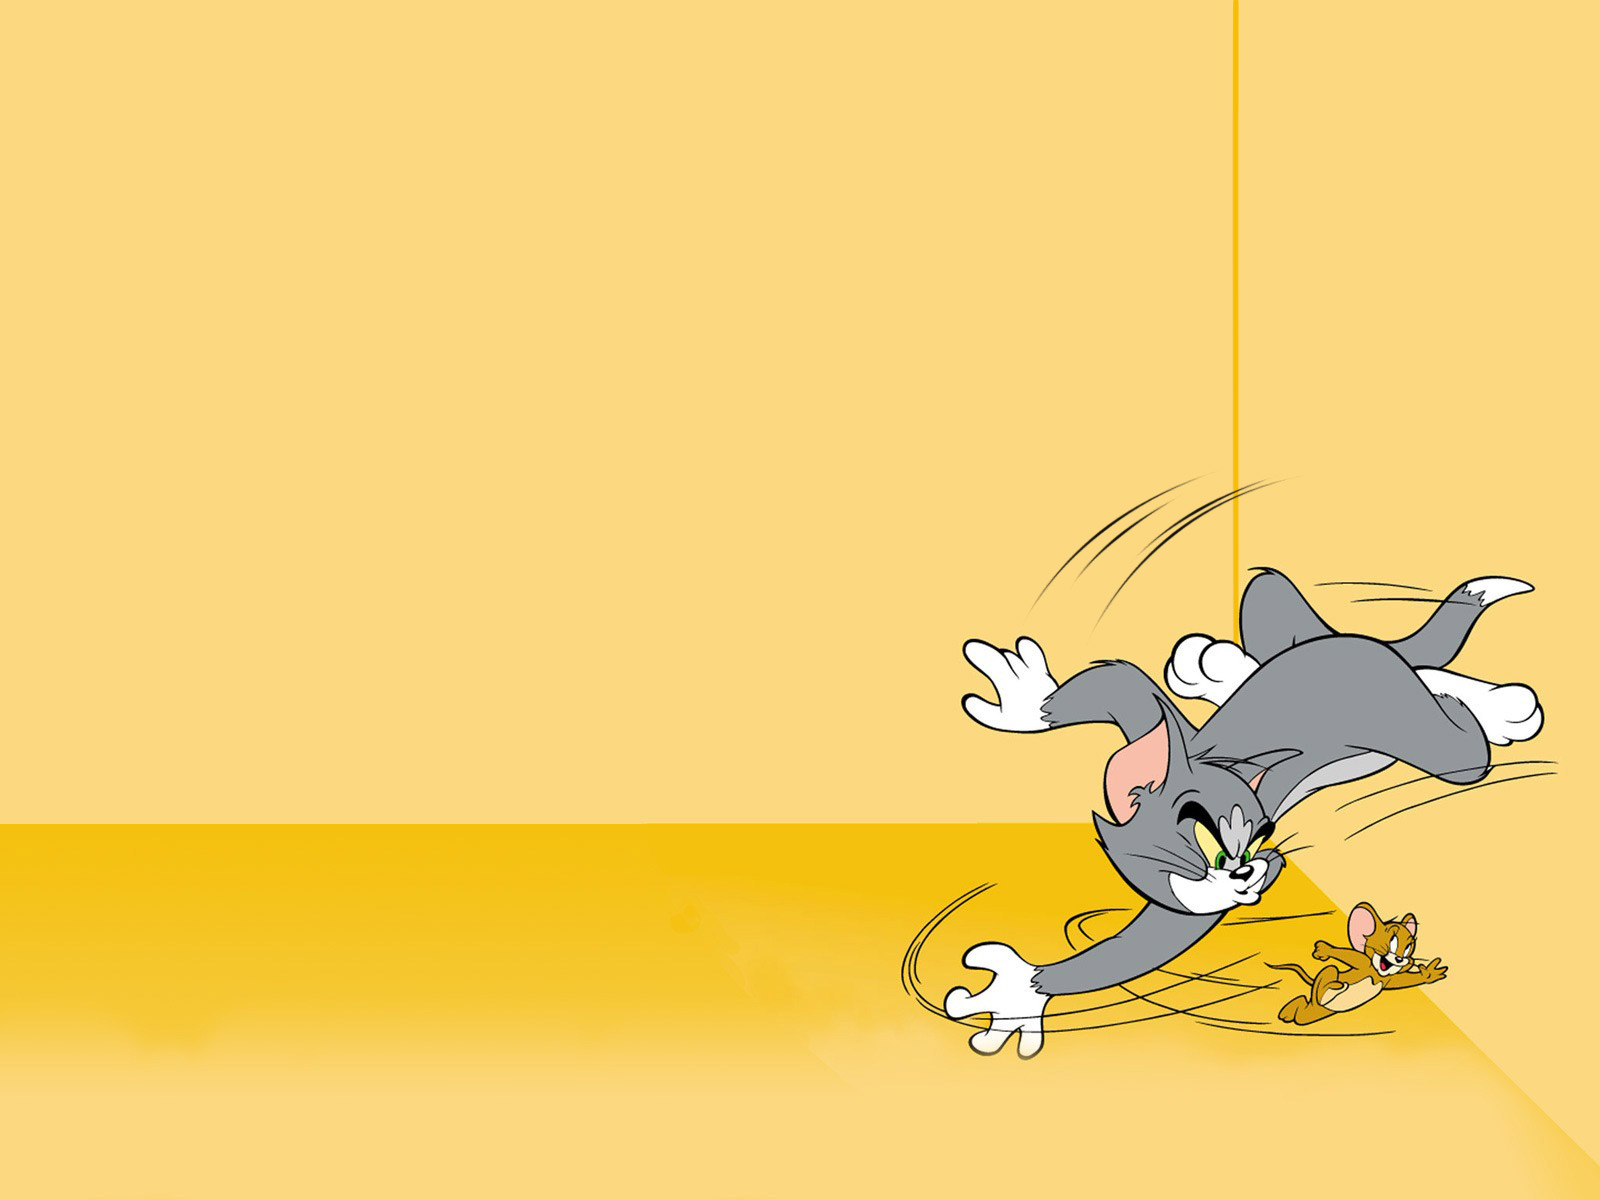 Tom and Jerry Cartoon PPT Backgrounds